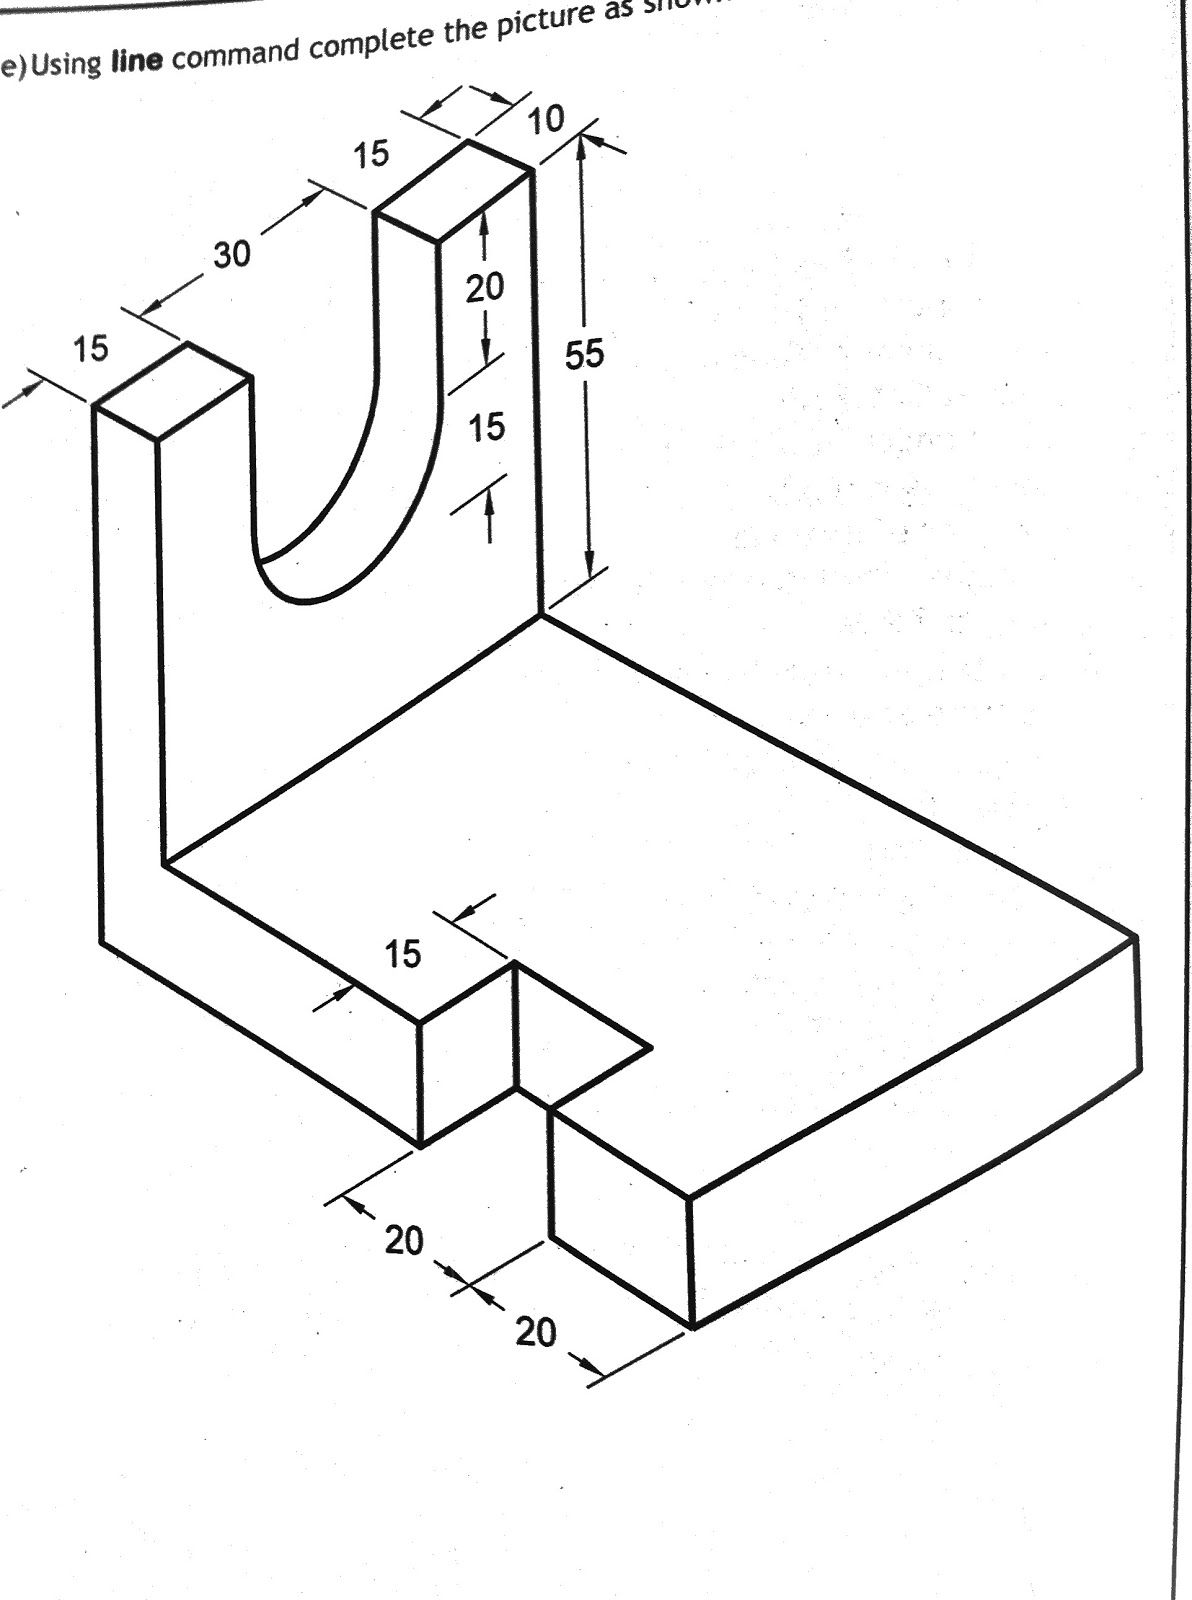 Isometric Piping Diagram Flasher Wiring 12v Simple Drawings Ideas For The House